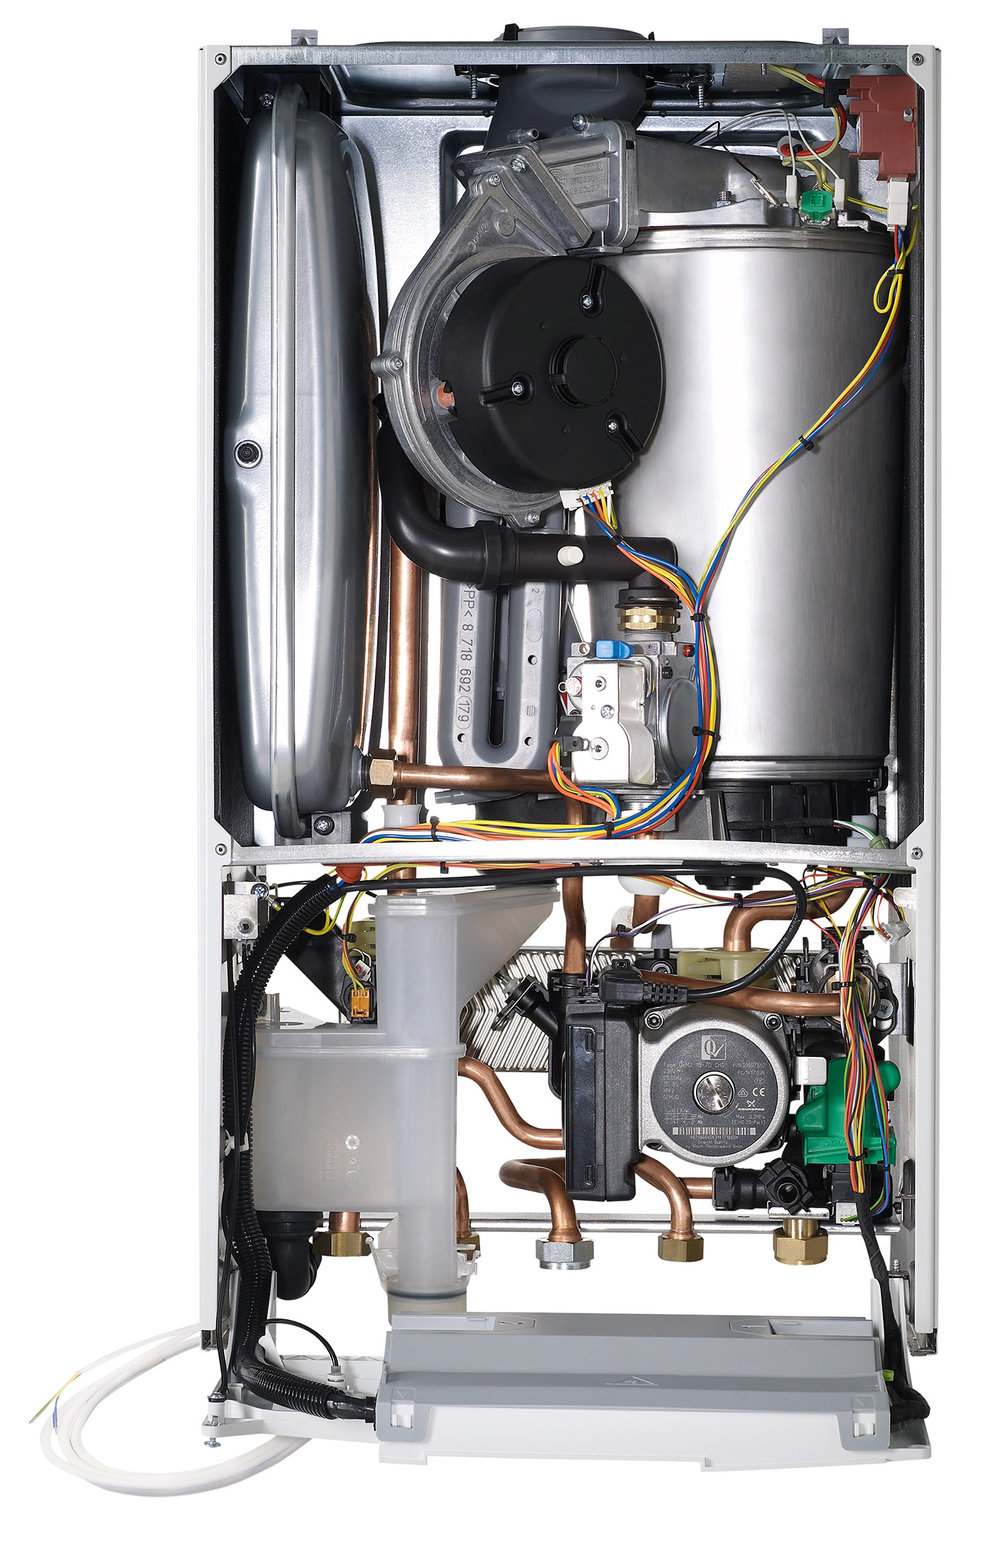 Repairs - Our boiler repair includes:> An initial inspection of your boiler and heating system.> No call out charge only pay for the the boiler parts and labour> No hidden costs - We will give you a quote for your repair so you know exactly what you're paying before work starts.> Repairs carried out by a fully qualified Gas Safe Registered engineer> If we can't fix your boiler we will not charge you and can give you a quote for a shiny new boiler right away.